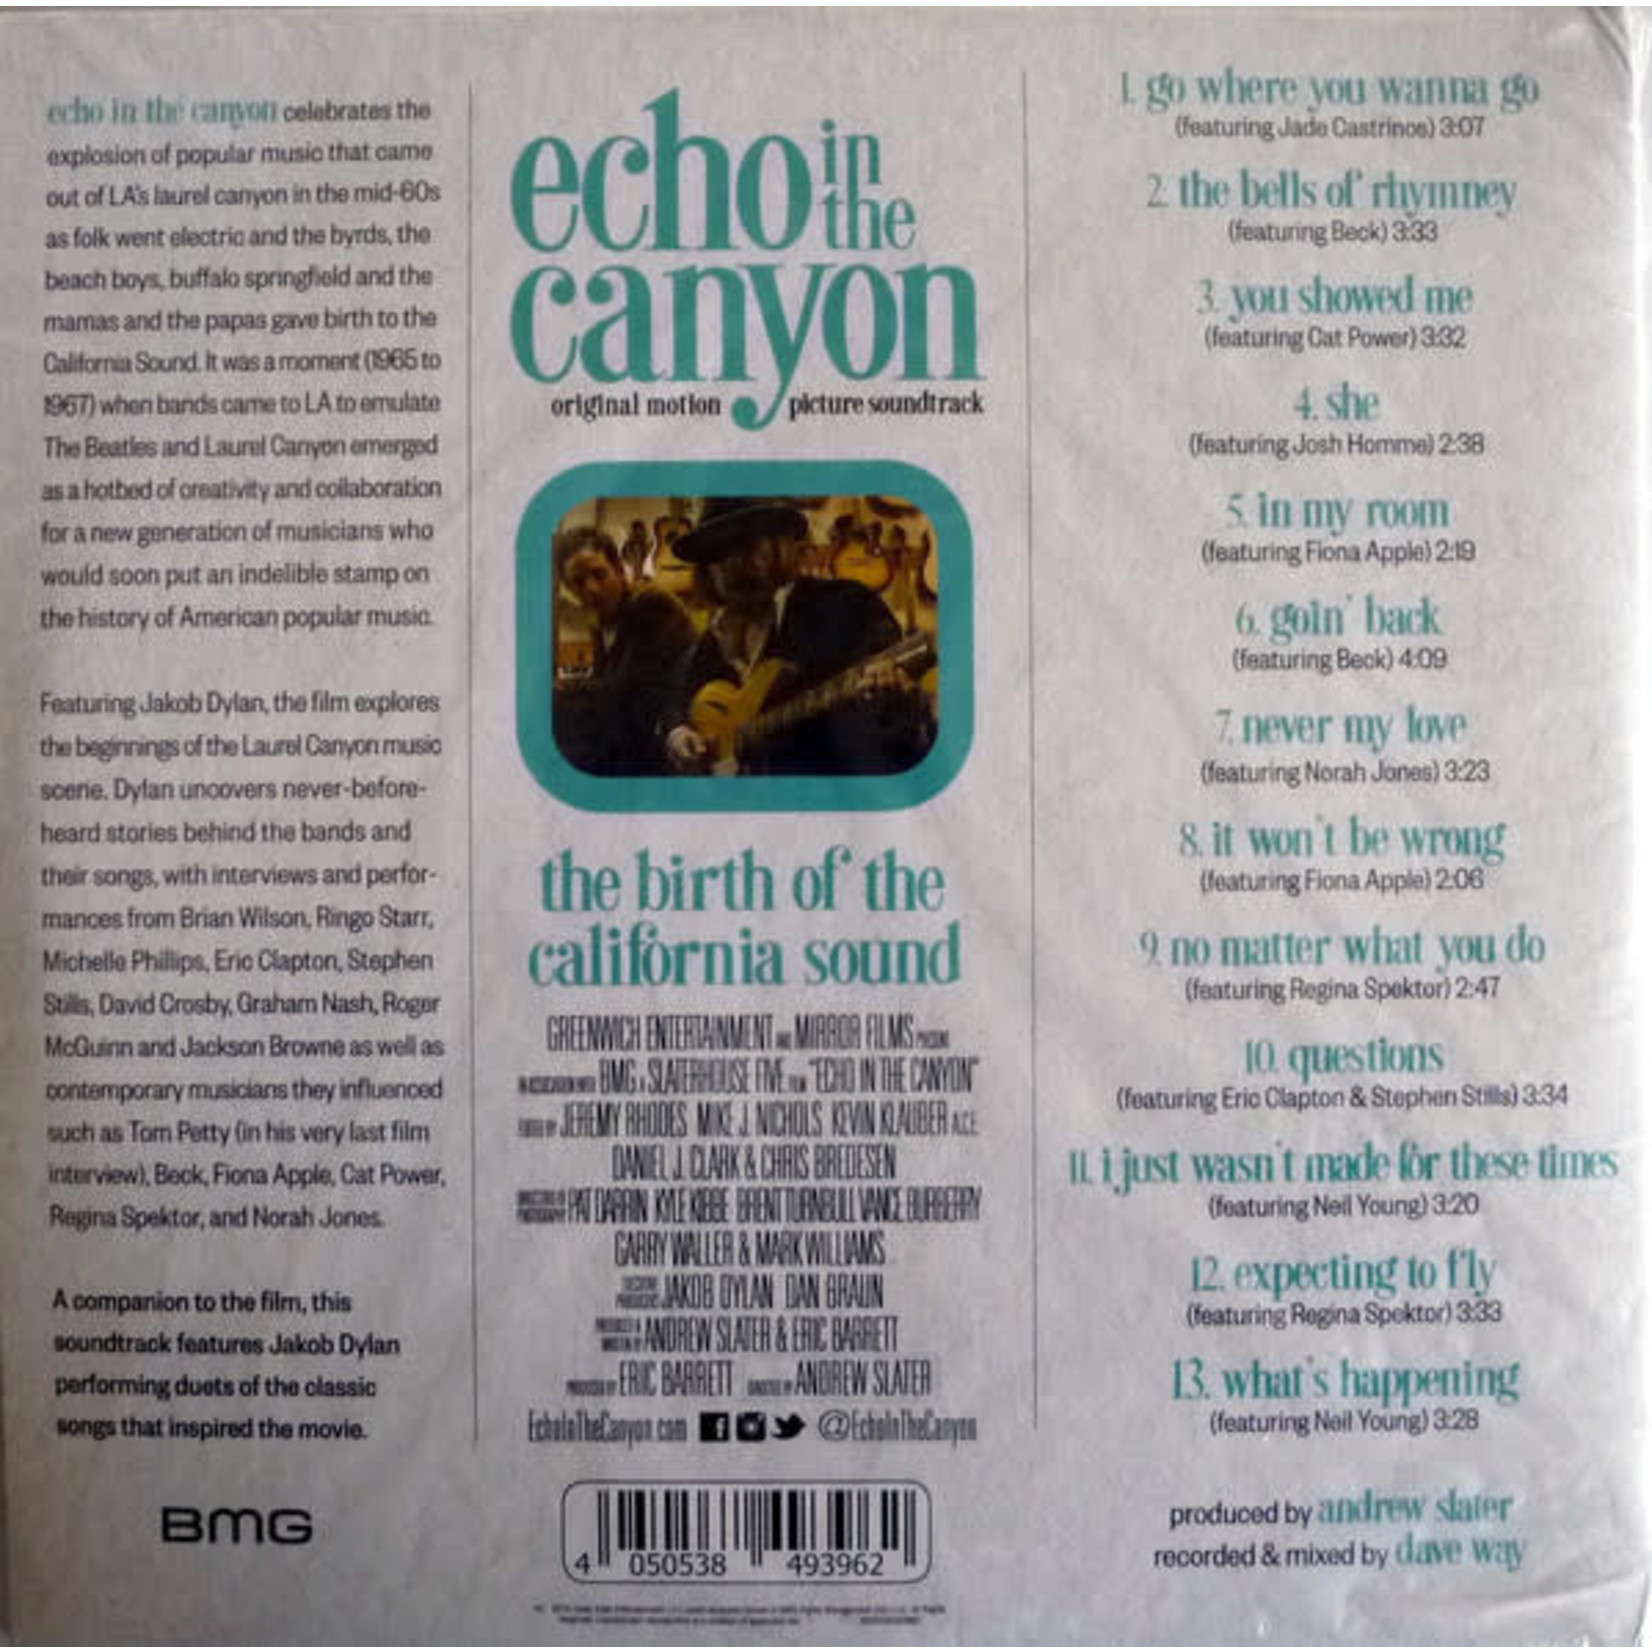 VARIOUS ARTISTS ECHO IN THE CANYON (ANDREW SLATER SCORE)